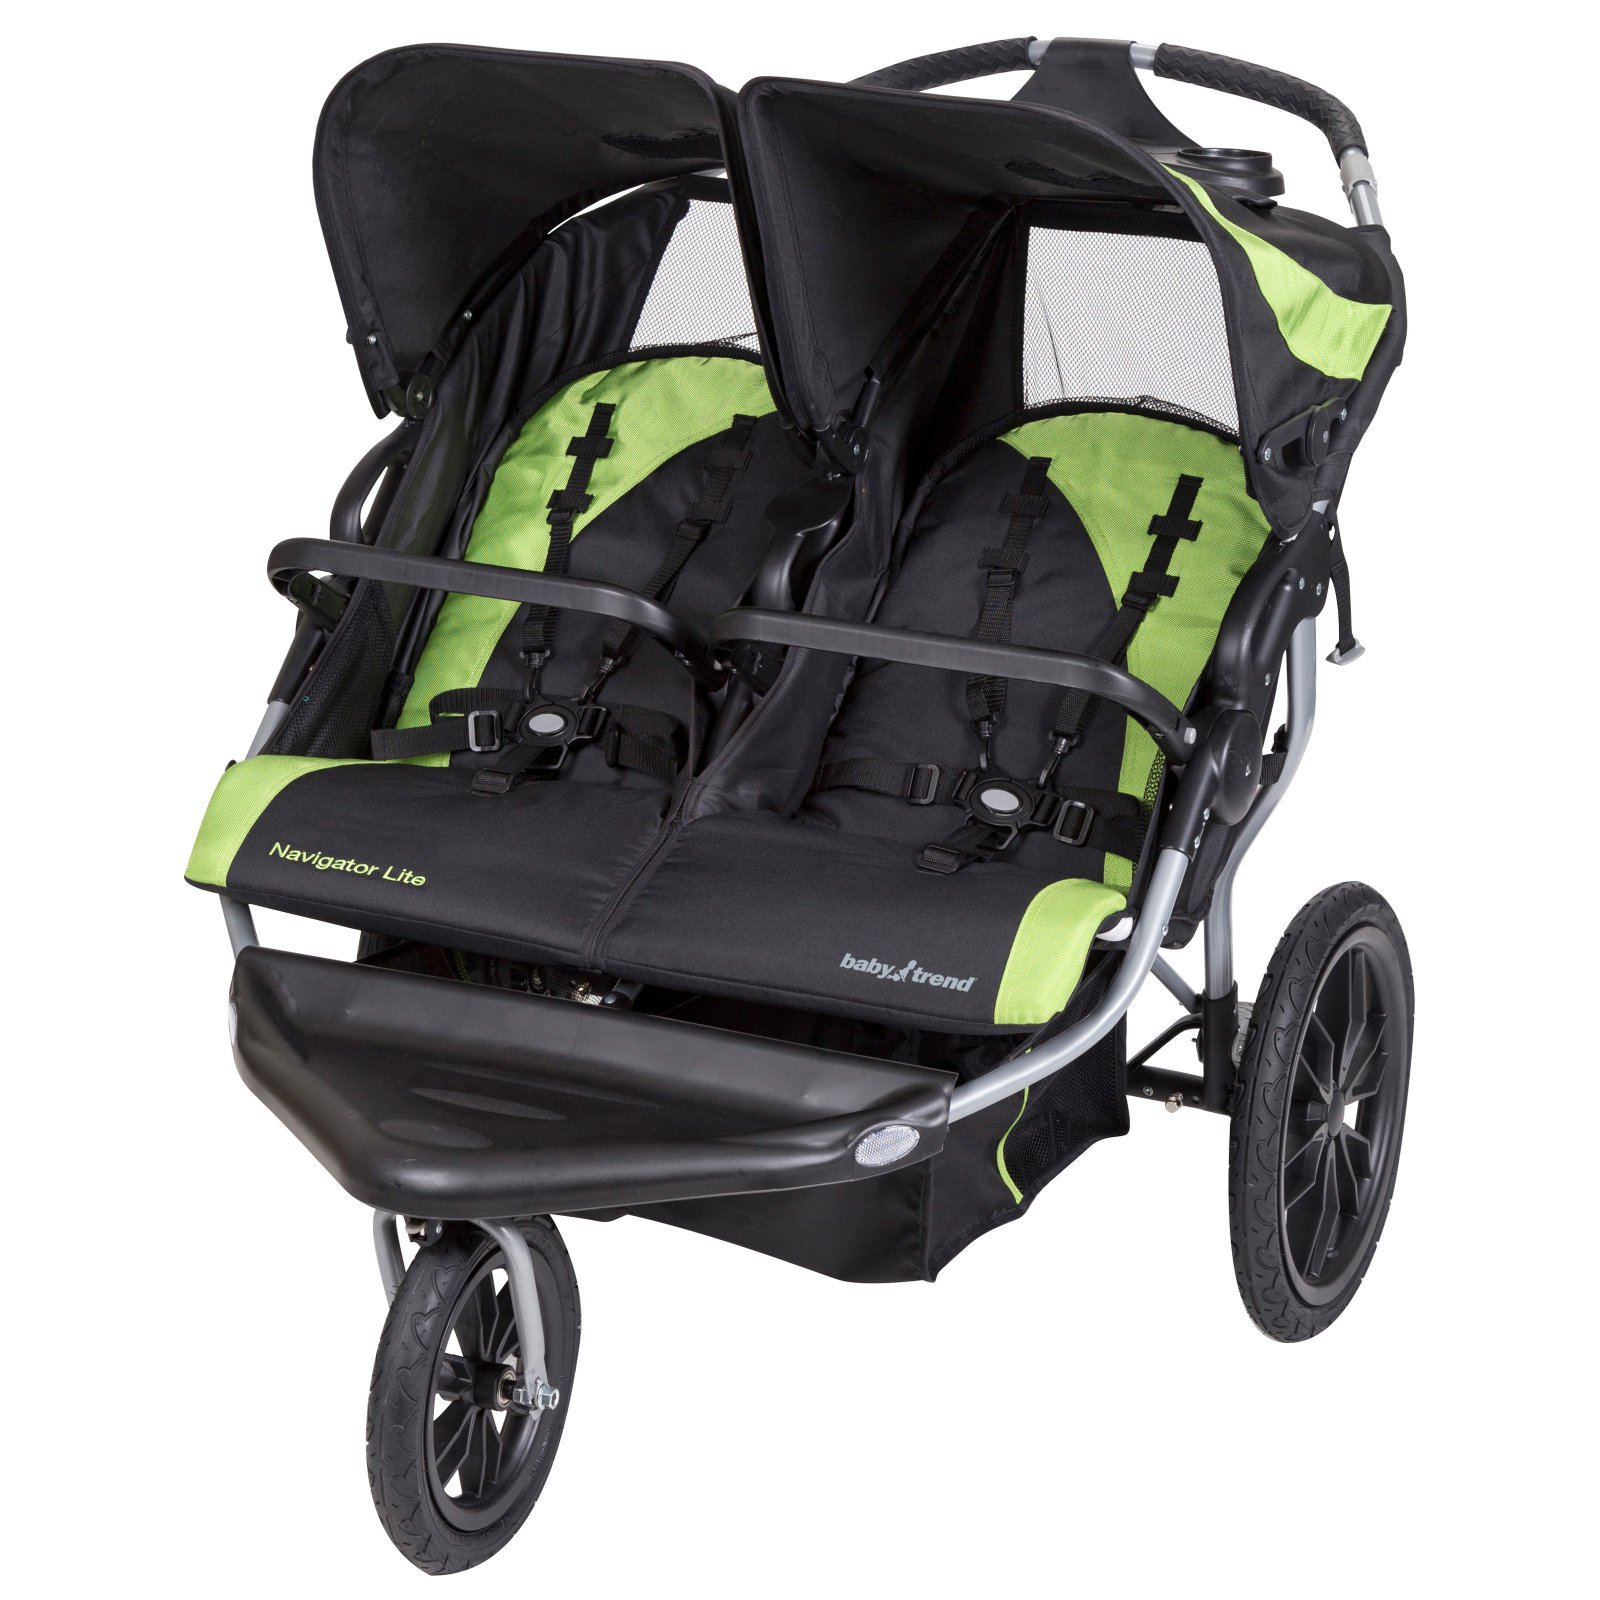 Baby Trend Navigator Lite Double Jogger Lincoln by Baby Trend